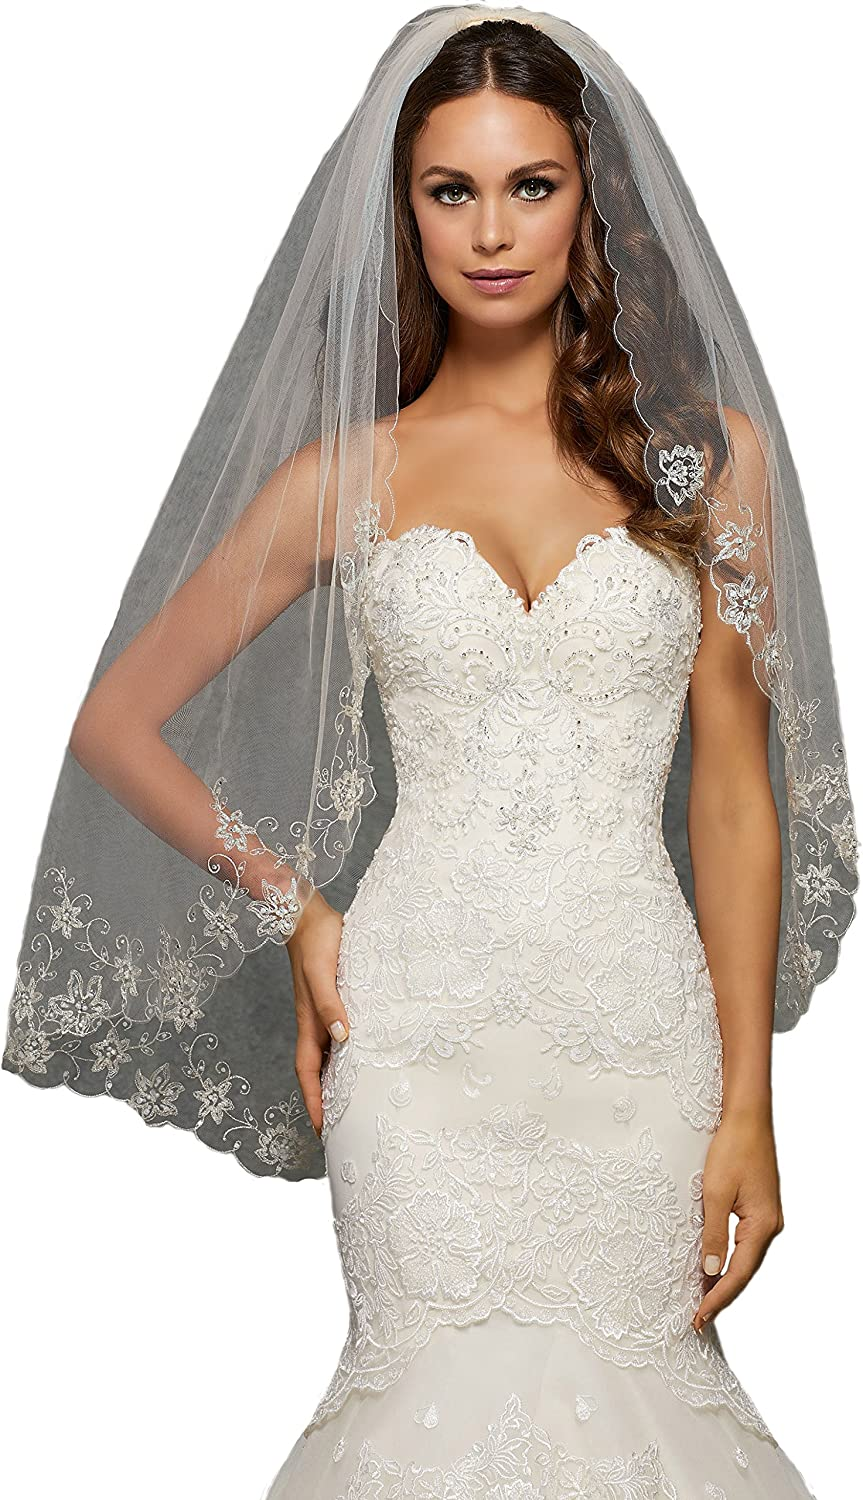 Passat 3 colors SingleTier 36  Fingertip Length Wedding Veil Embroidered with Pearls and Rhinestones VL1043